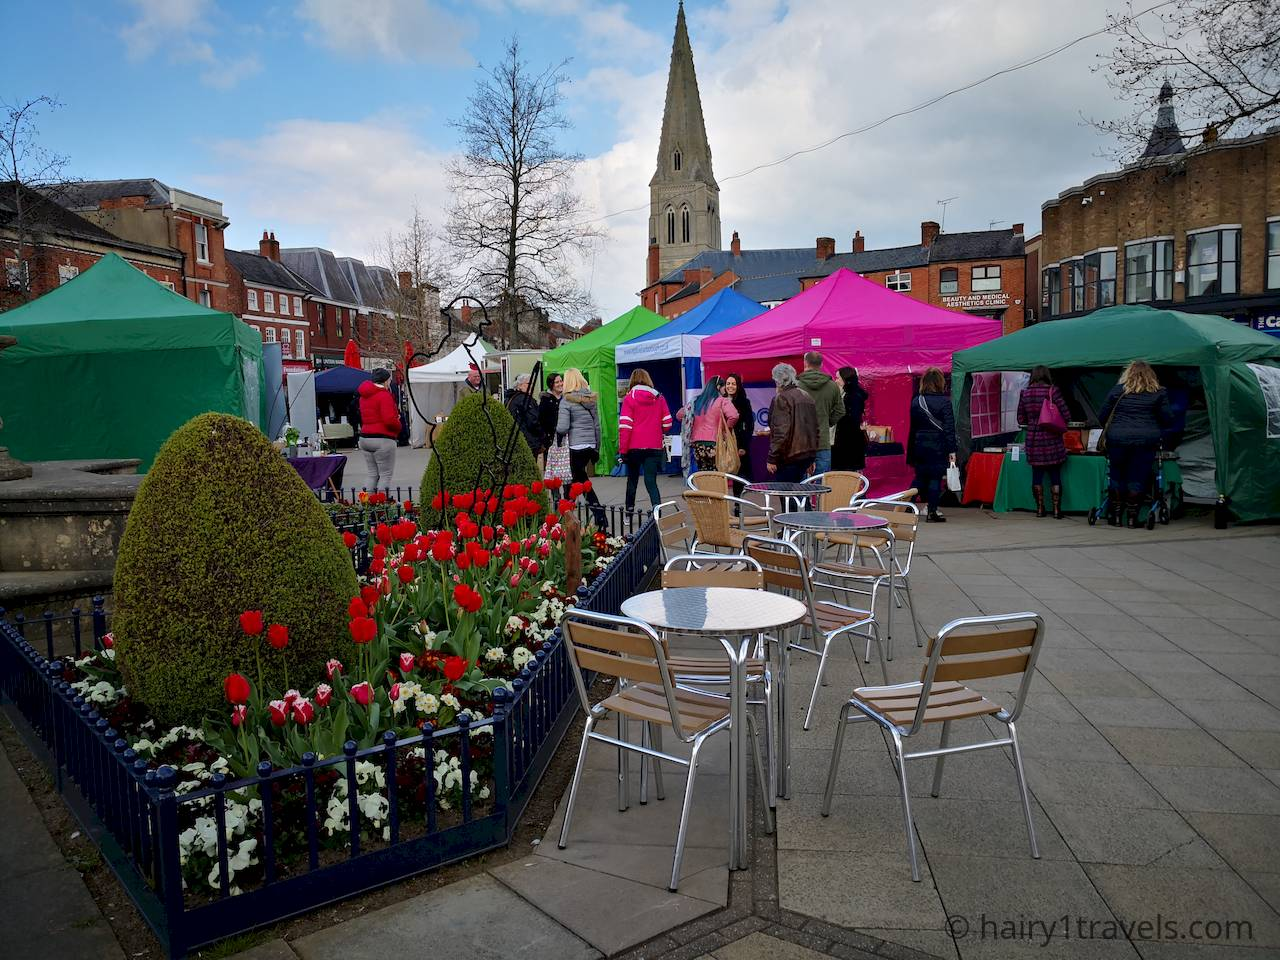 A view of the Holistic Harborough Festival in The Square.